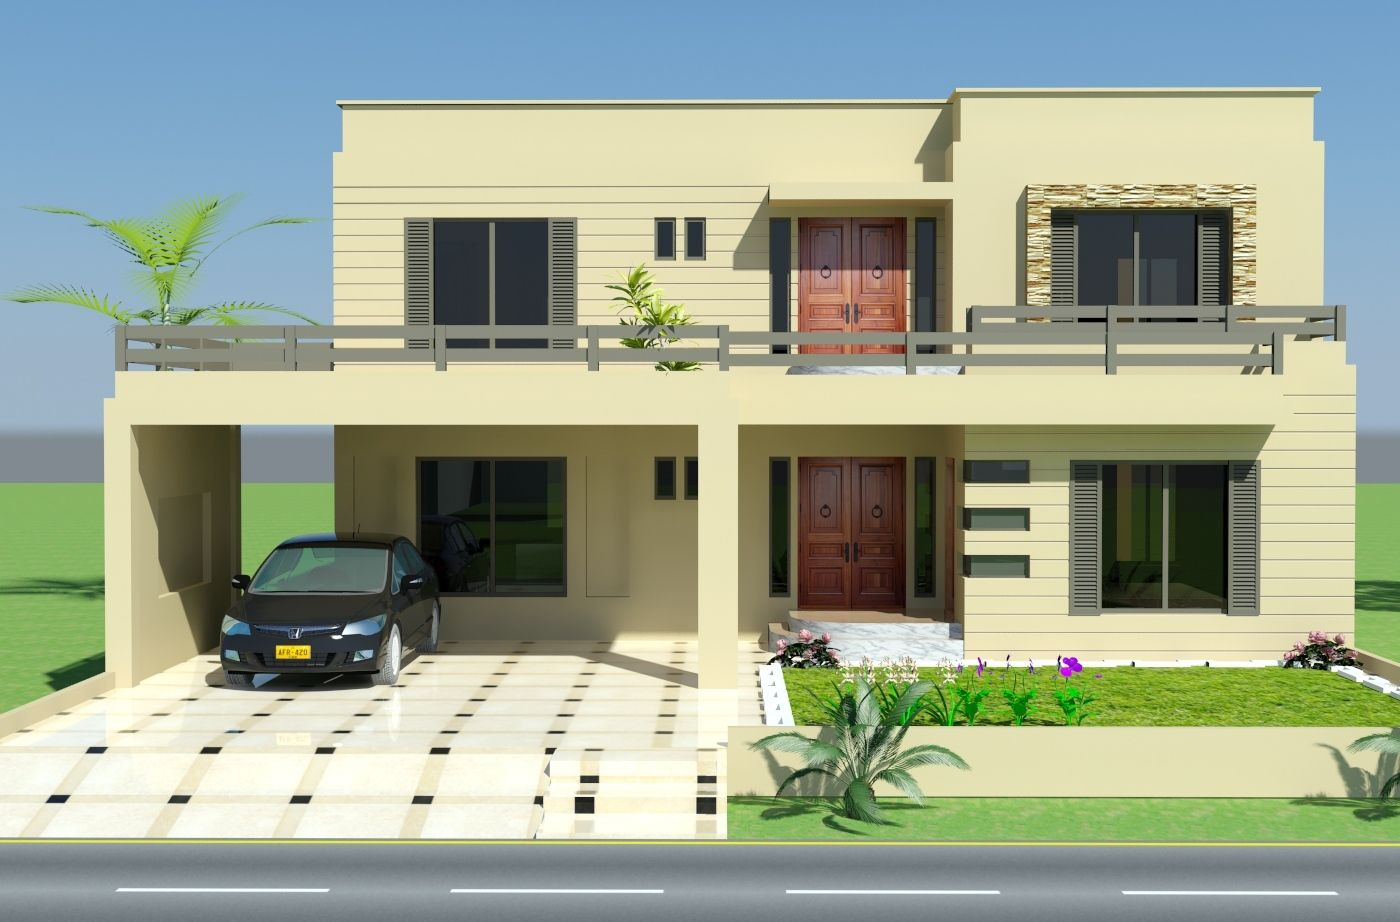 Exterior house design front elevation mi futura casa for Window design elevation